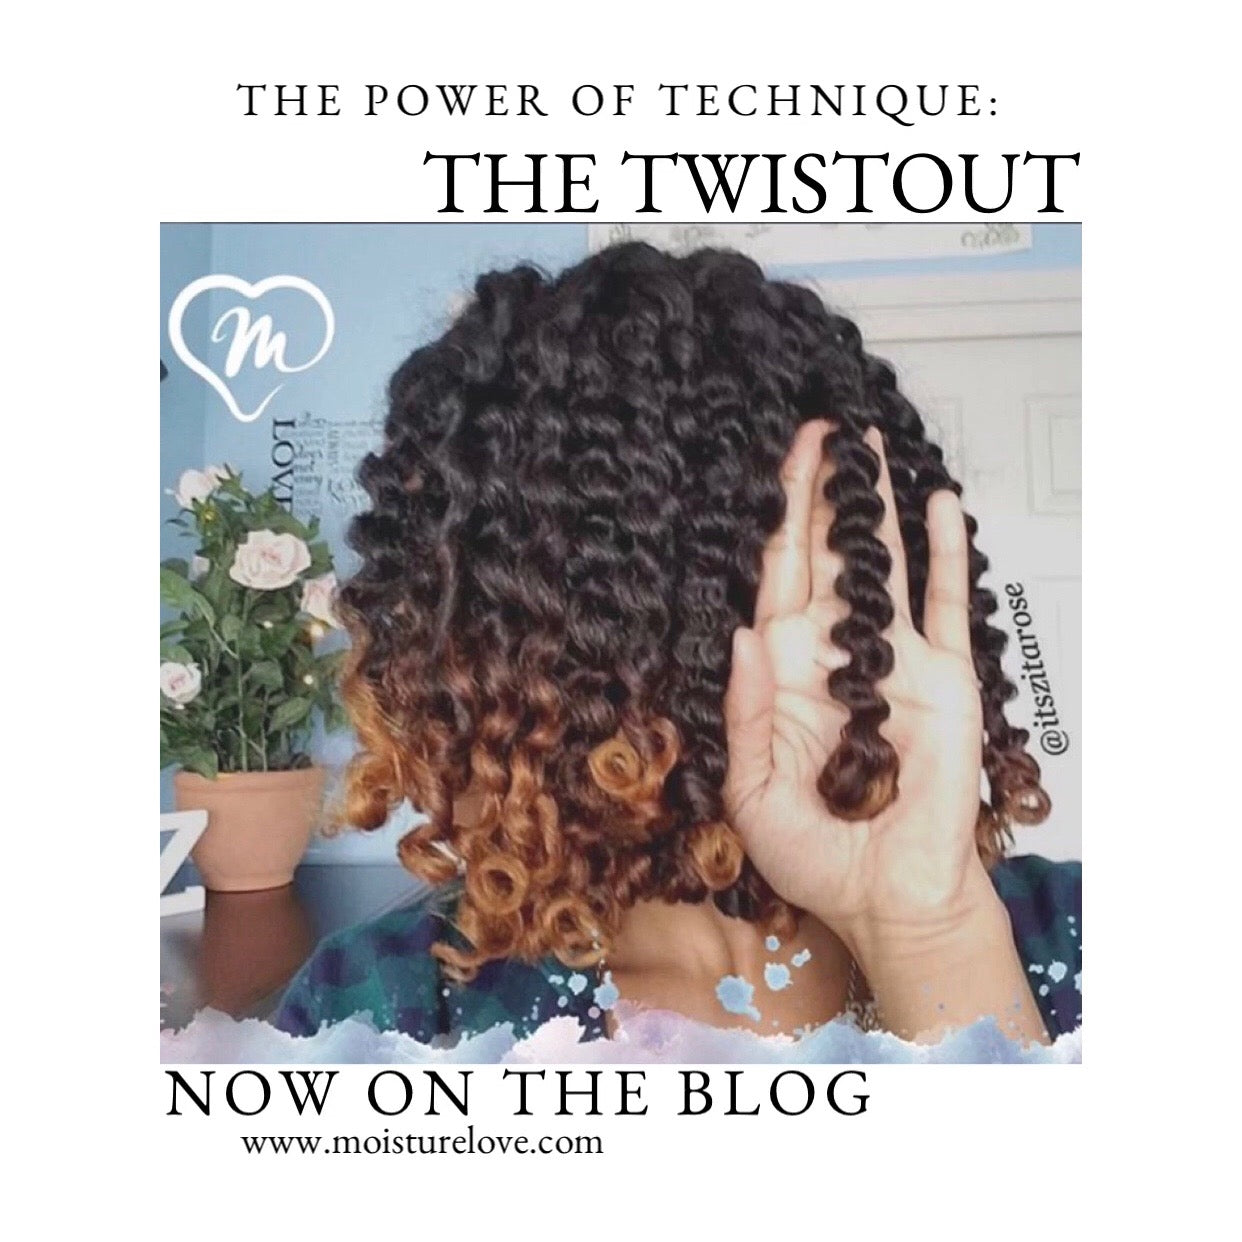 Mastering the twistout- The true power of Technique